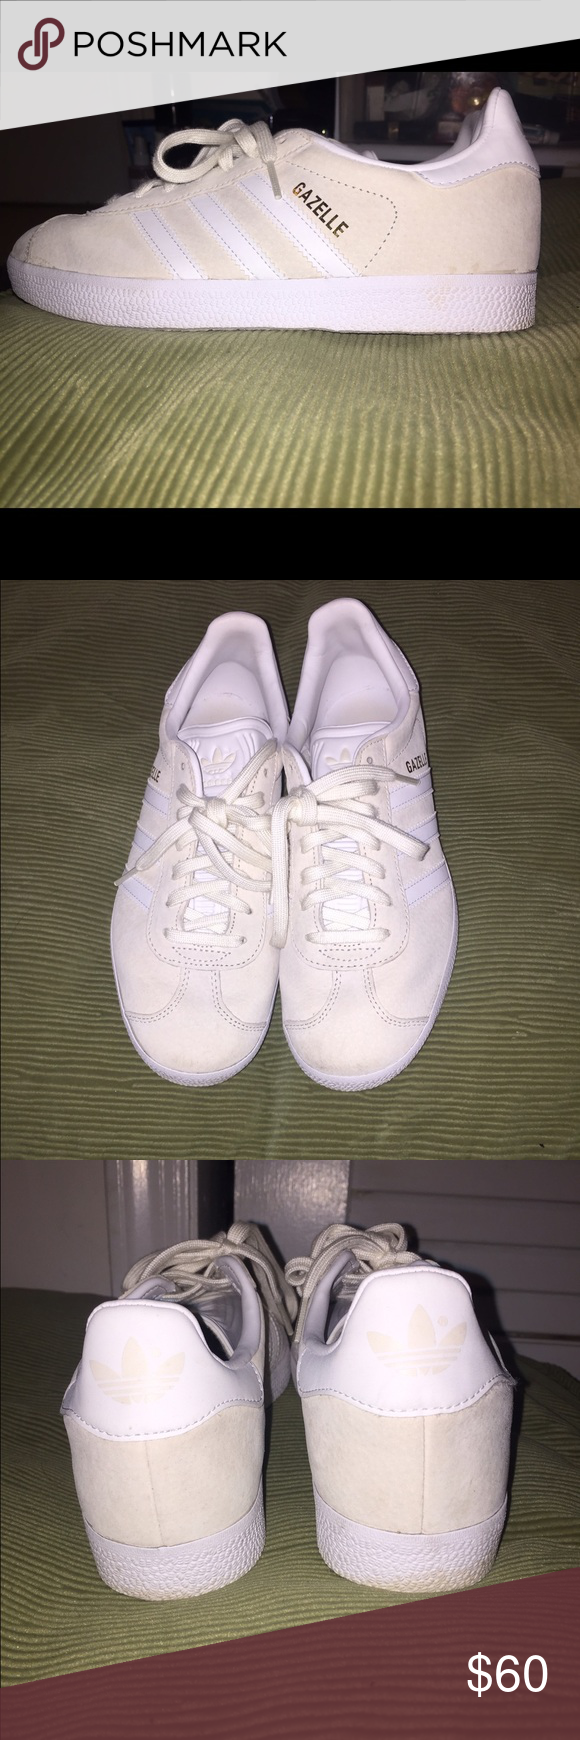 Adidas Women's Gazelle Casual Shoes Comfortable cream and white adidas sneakers. Only worn twice and are in perfect condition! Adidas Shoes Sneakers